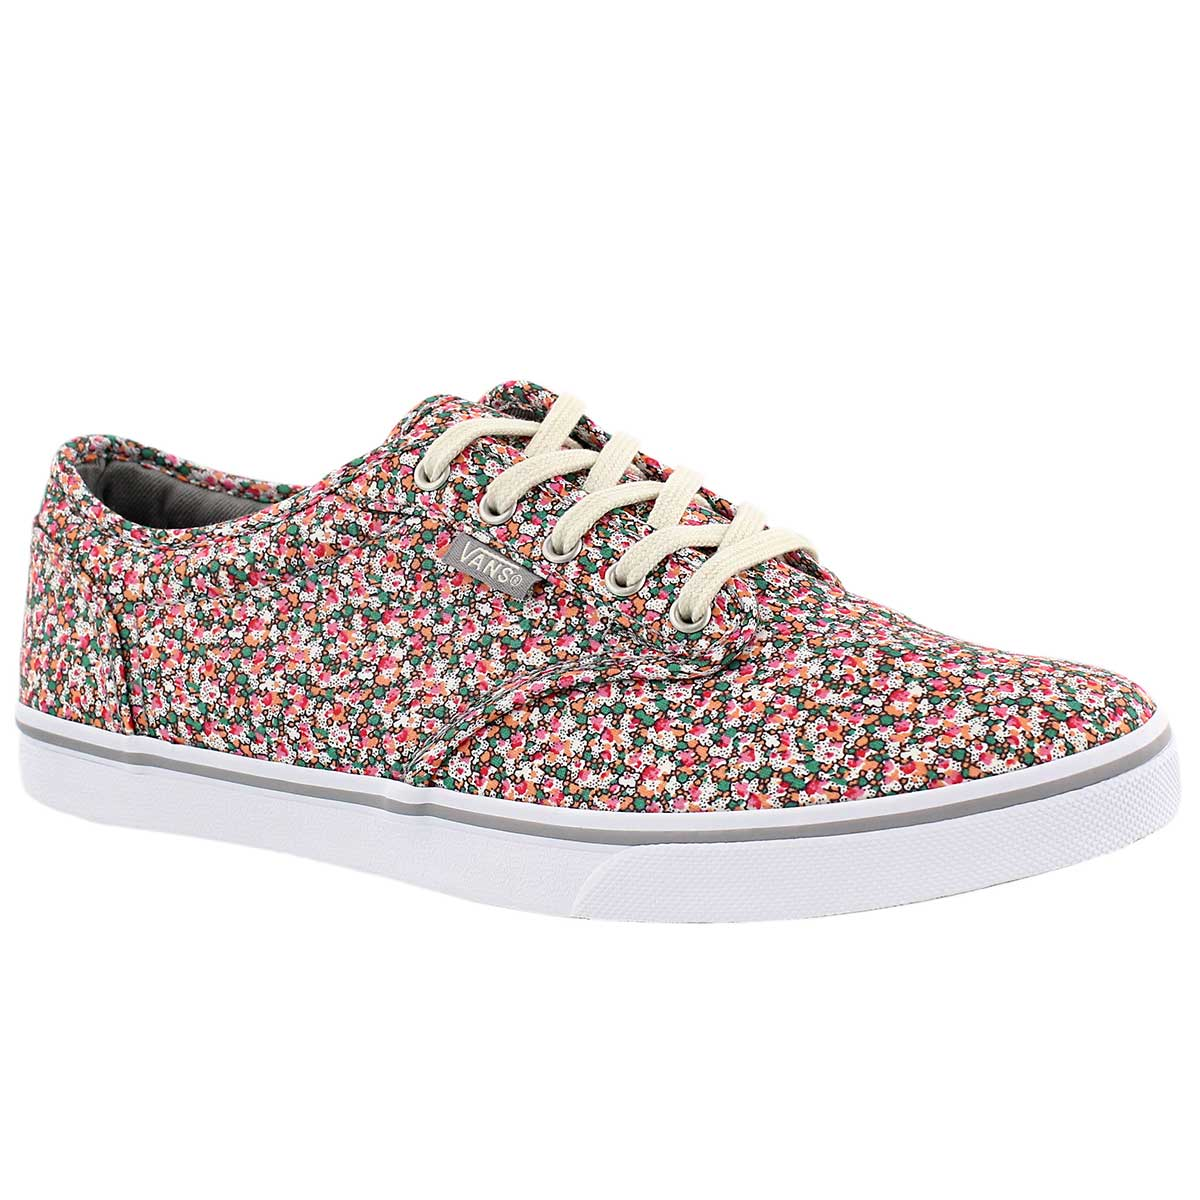 Women's ATWOOD LOW multi lace up sneakers